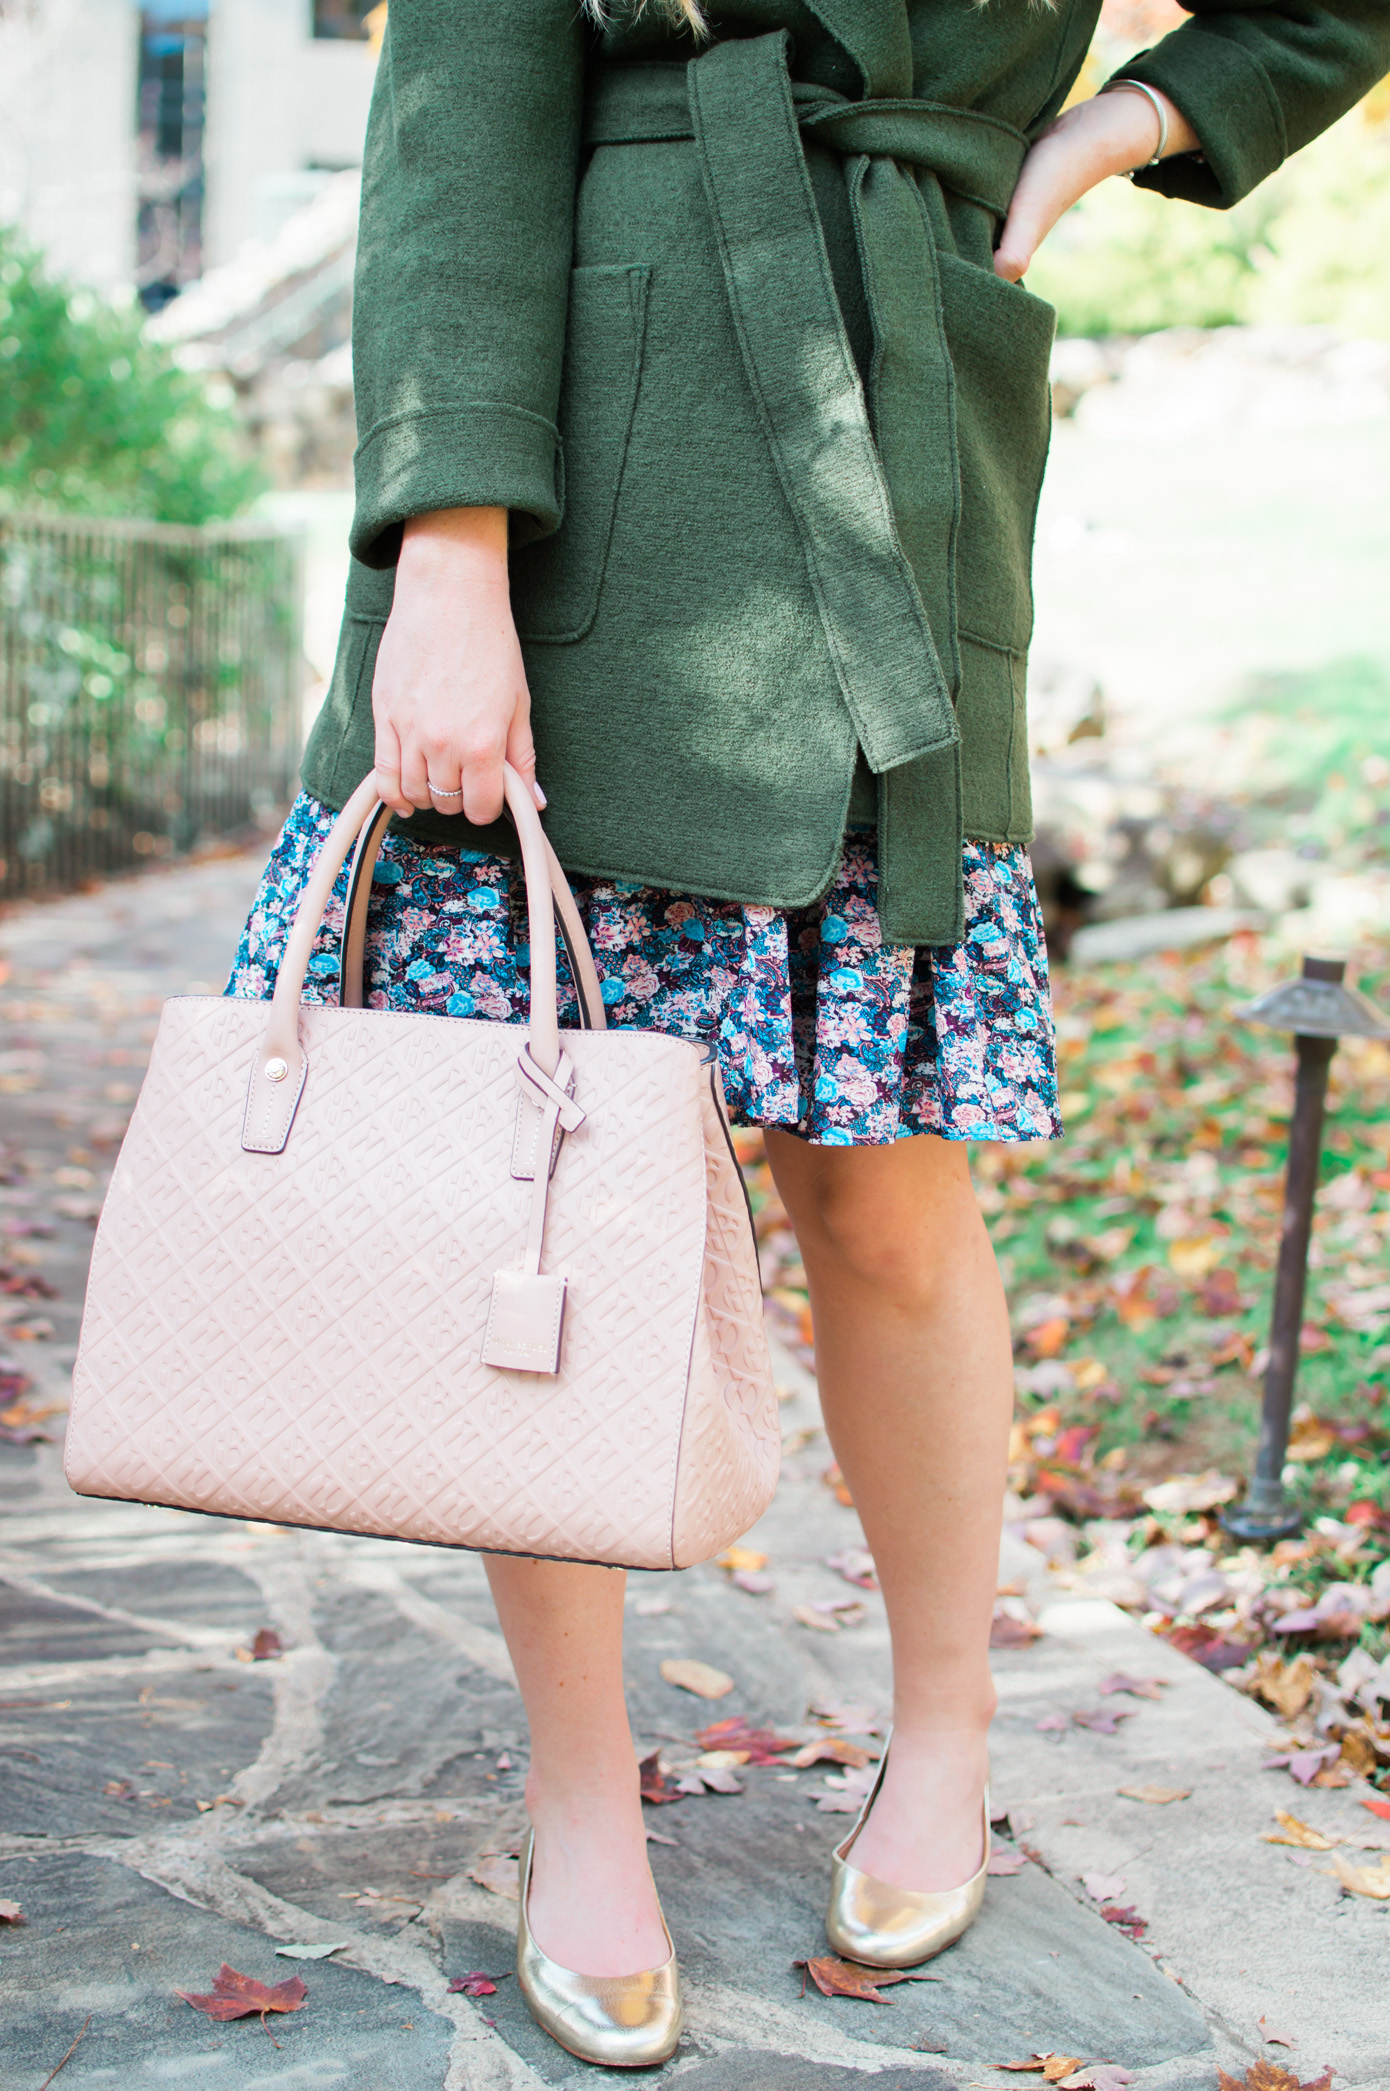 J.Crew Wrap Coat | Olive Wrap Coat for Winter | Louella Reese Life & Style Blog